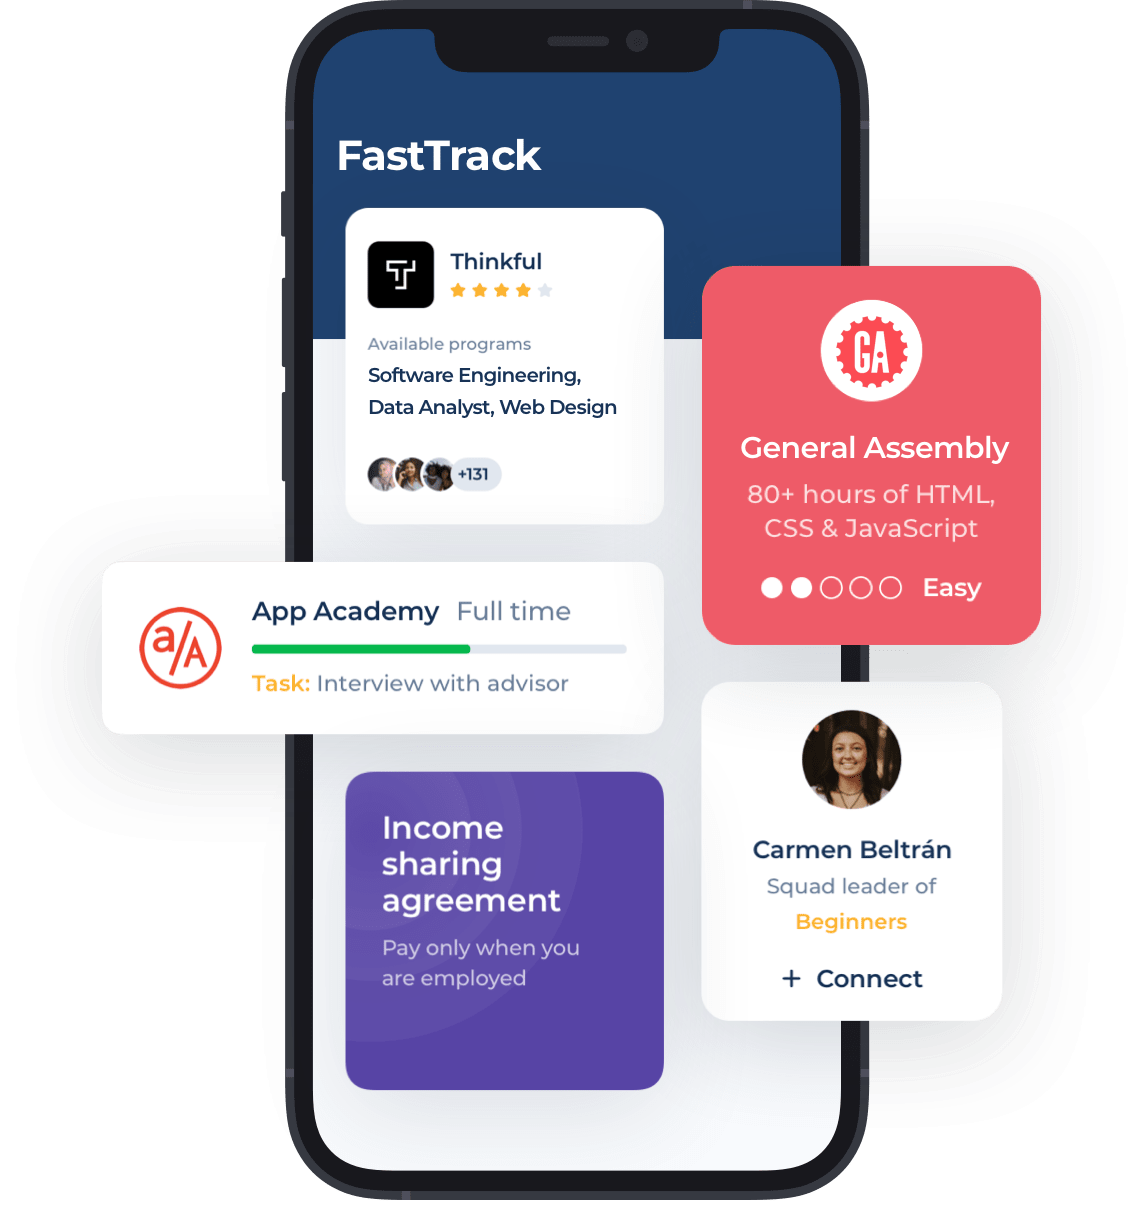 Stylized version of the Career Karma app indicating the FastTrack product. One card in the app shows Thinkful with four of five stars; in available programs, Software engineering, Data analyst, and Web Design appear; the images of three users with +131 more users indicated appears. Another card indicates Kenzie Academy with an 80+ hour prep course covering HTML, CSS & JavaScript, ranked 'Easy'. Another card indicates 60% progress towards applying to App Academy, with the next highlighted task of 'Interview with advisor'. Another card shows a Career Karma user, Carmen Beltran, Squad leader of 'Beginners' and a button to 'Connect' with her. The final card reads 'Income sharing agreement' and 'Pay only when you are employed'